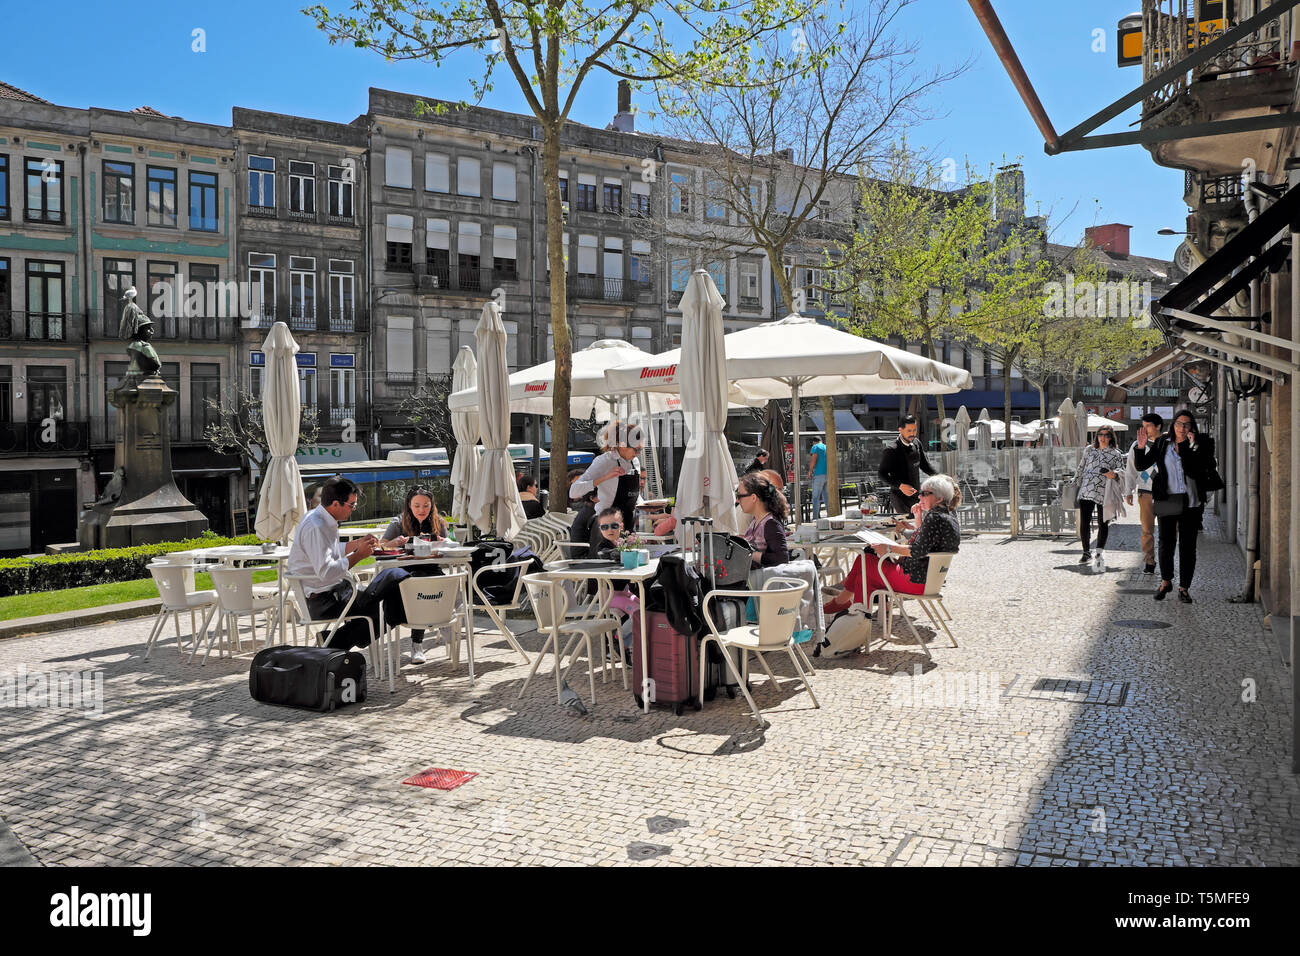 People sitting eating and drinking at outside tables on a patio pavement restaurant with umbrellas in spring sunshine Porto Portugal  KATHY DEWITT - Stock Image